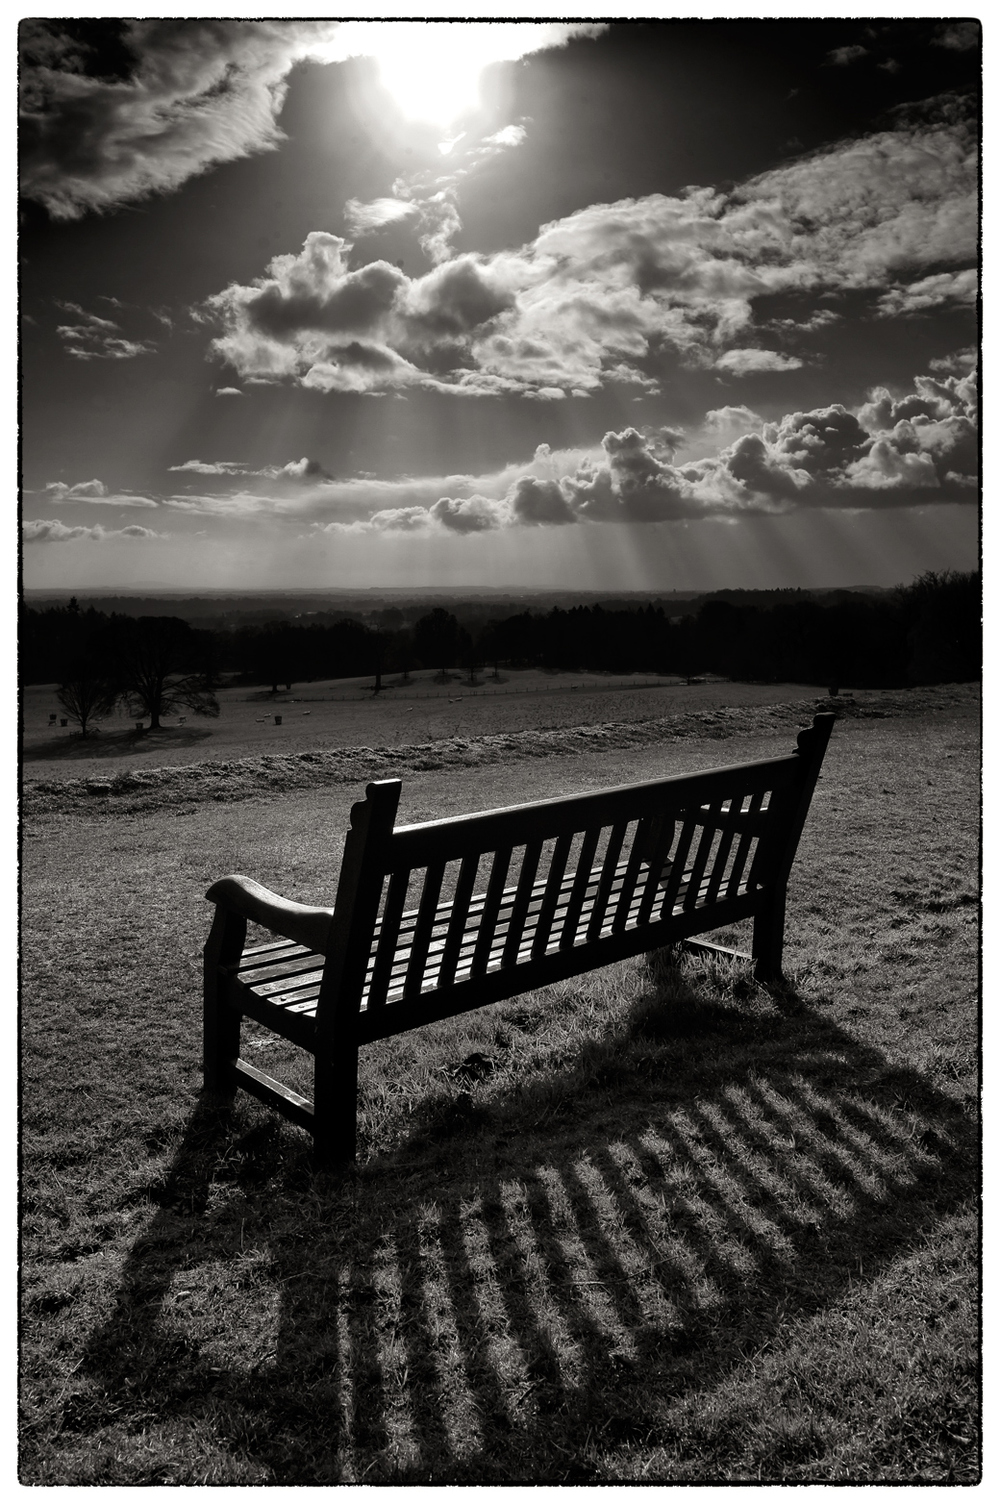 A bench with a view.